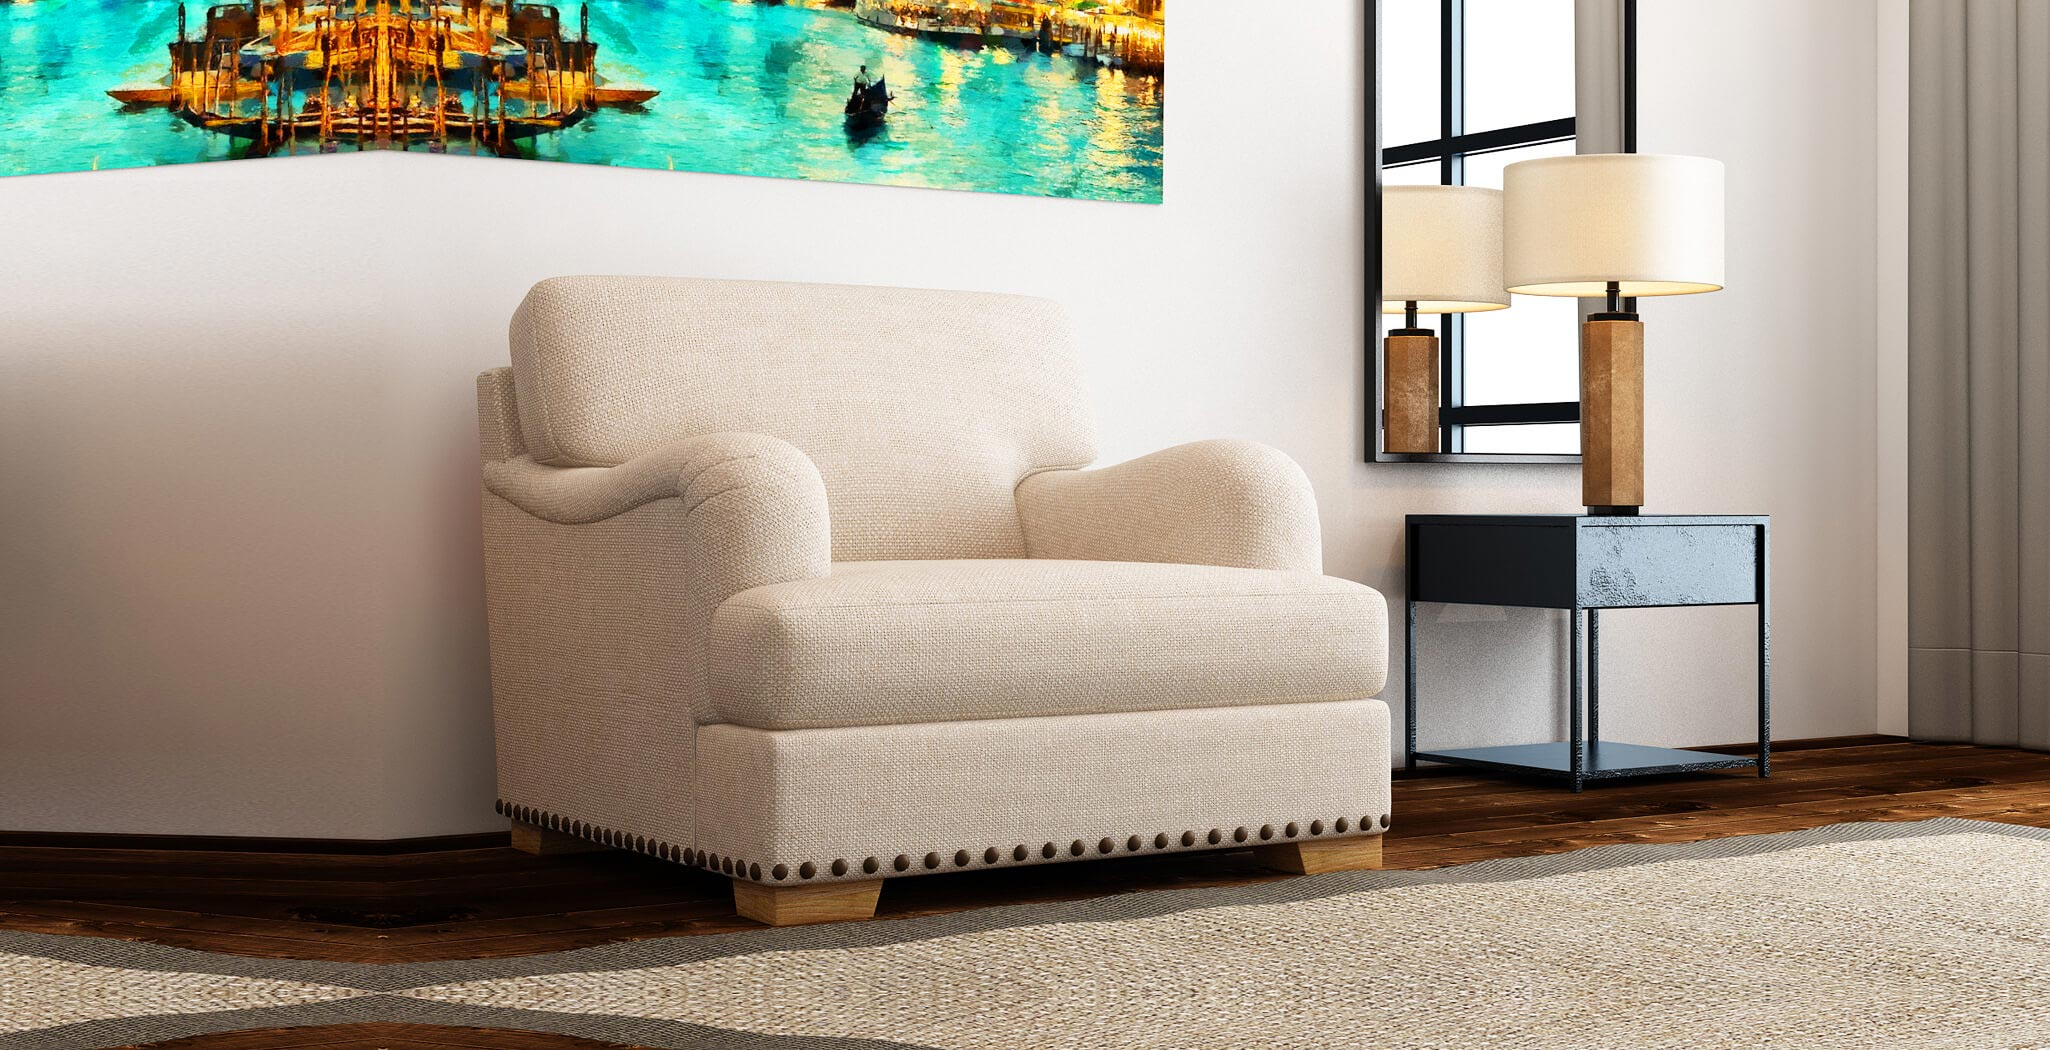 brighton chair premium furiture DreamSofa